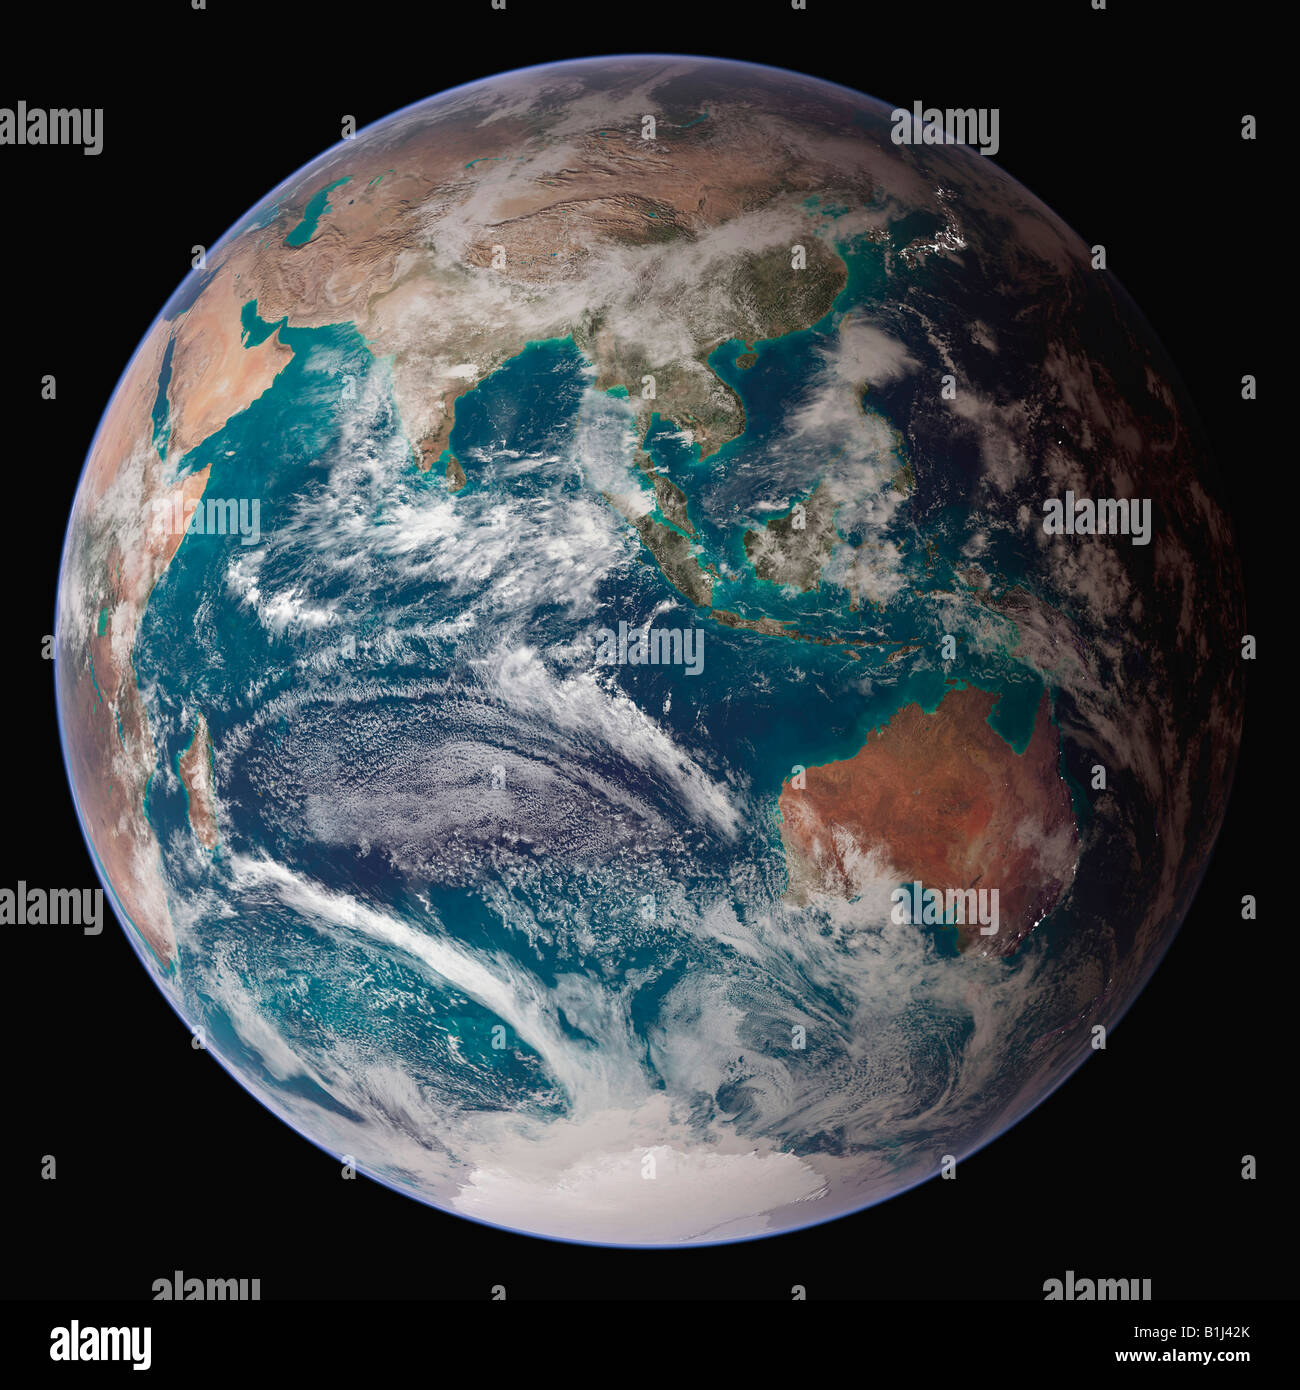 Satellite view of the earth showing the Eastern Hemisphere - Stock Image